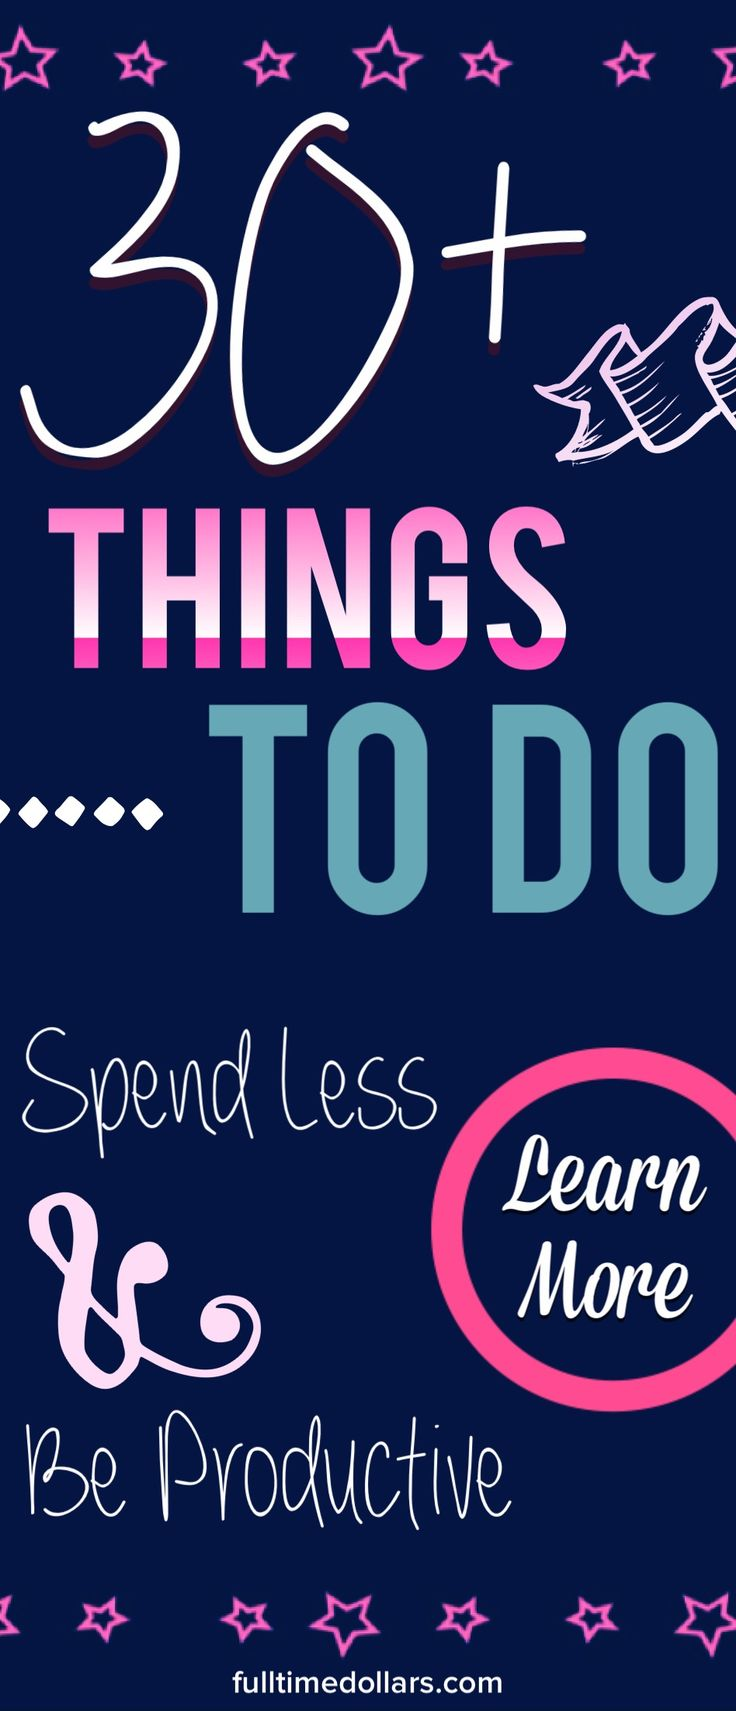 Looking for activities to do that don't require a lot of spending - but are also productive? There are a plethora of no-spend or minimal spend options that you can take advantage of to cut back every so often. I'm breaking it down by category of activities you can do and save money in the process. | No-spend productive weekend | Minimal spend | Productive things to do |